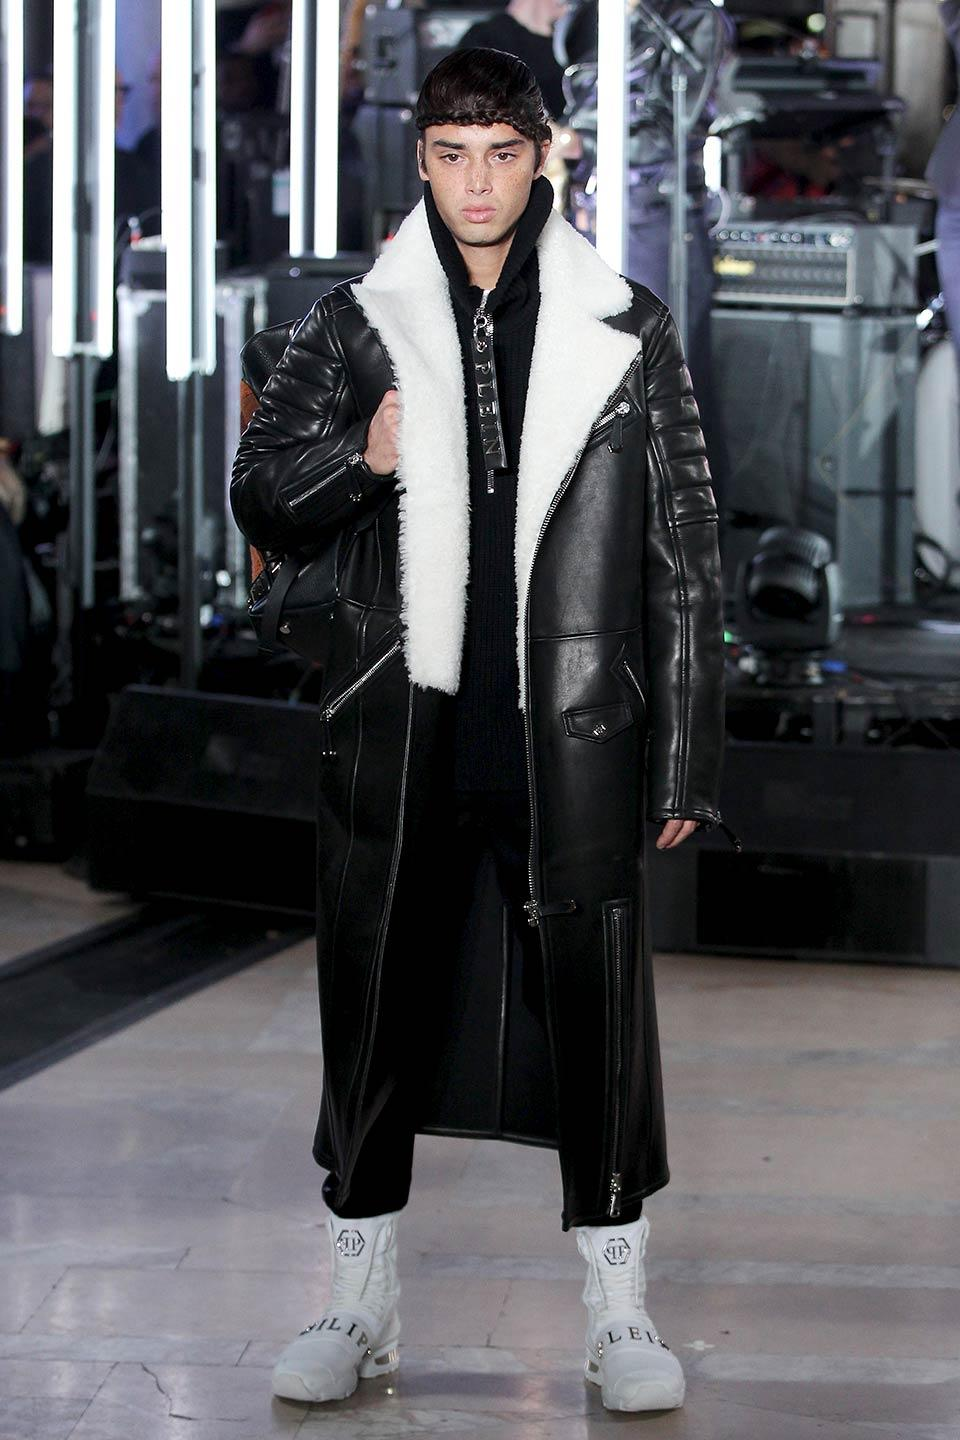 Men's Leather Jackets for Winter 2018 3